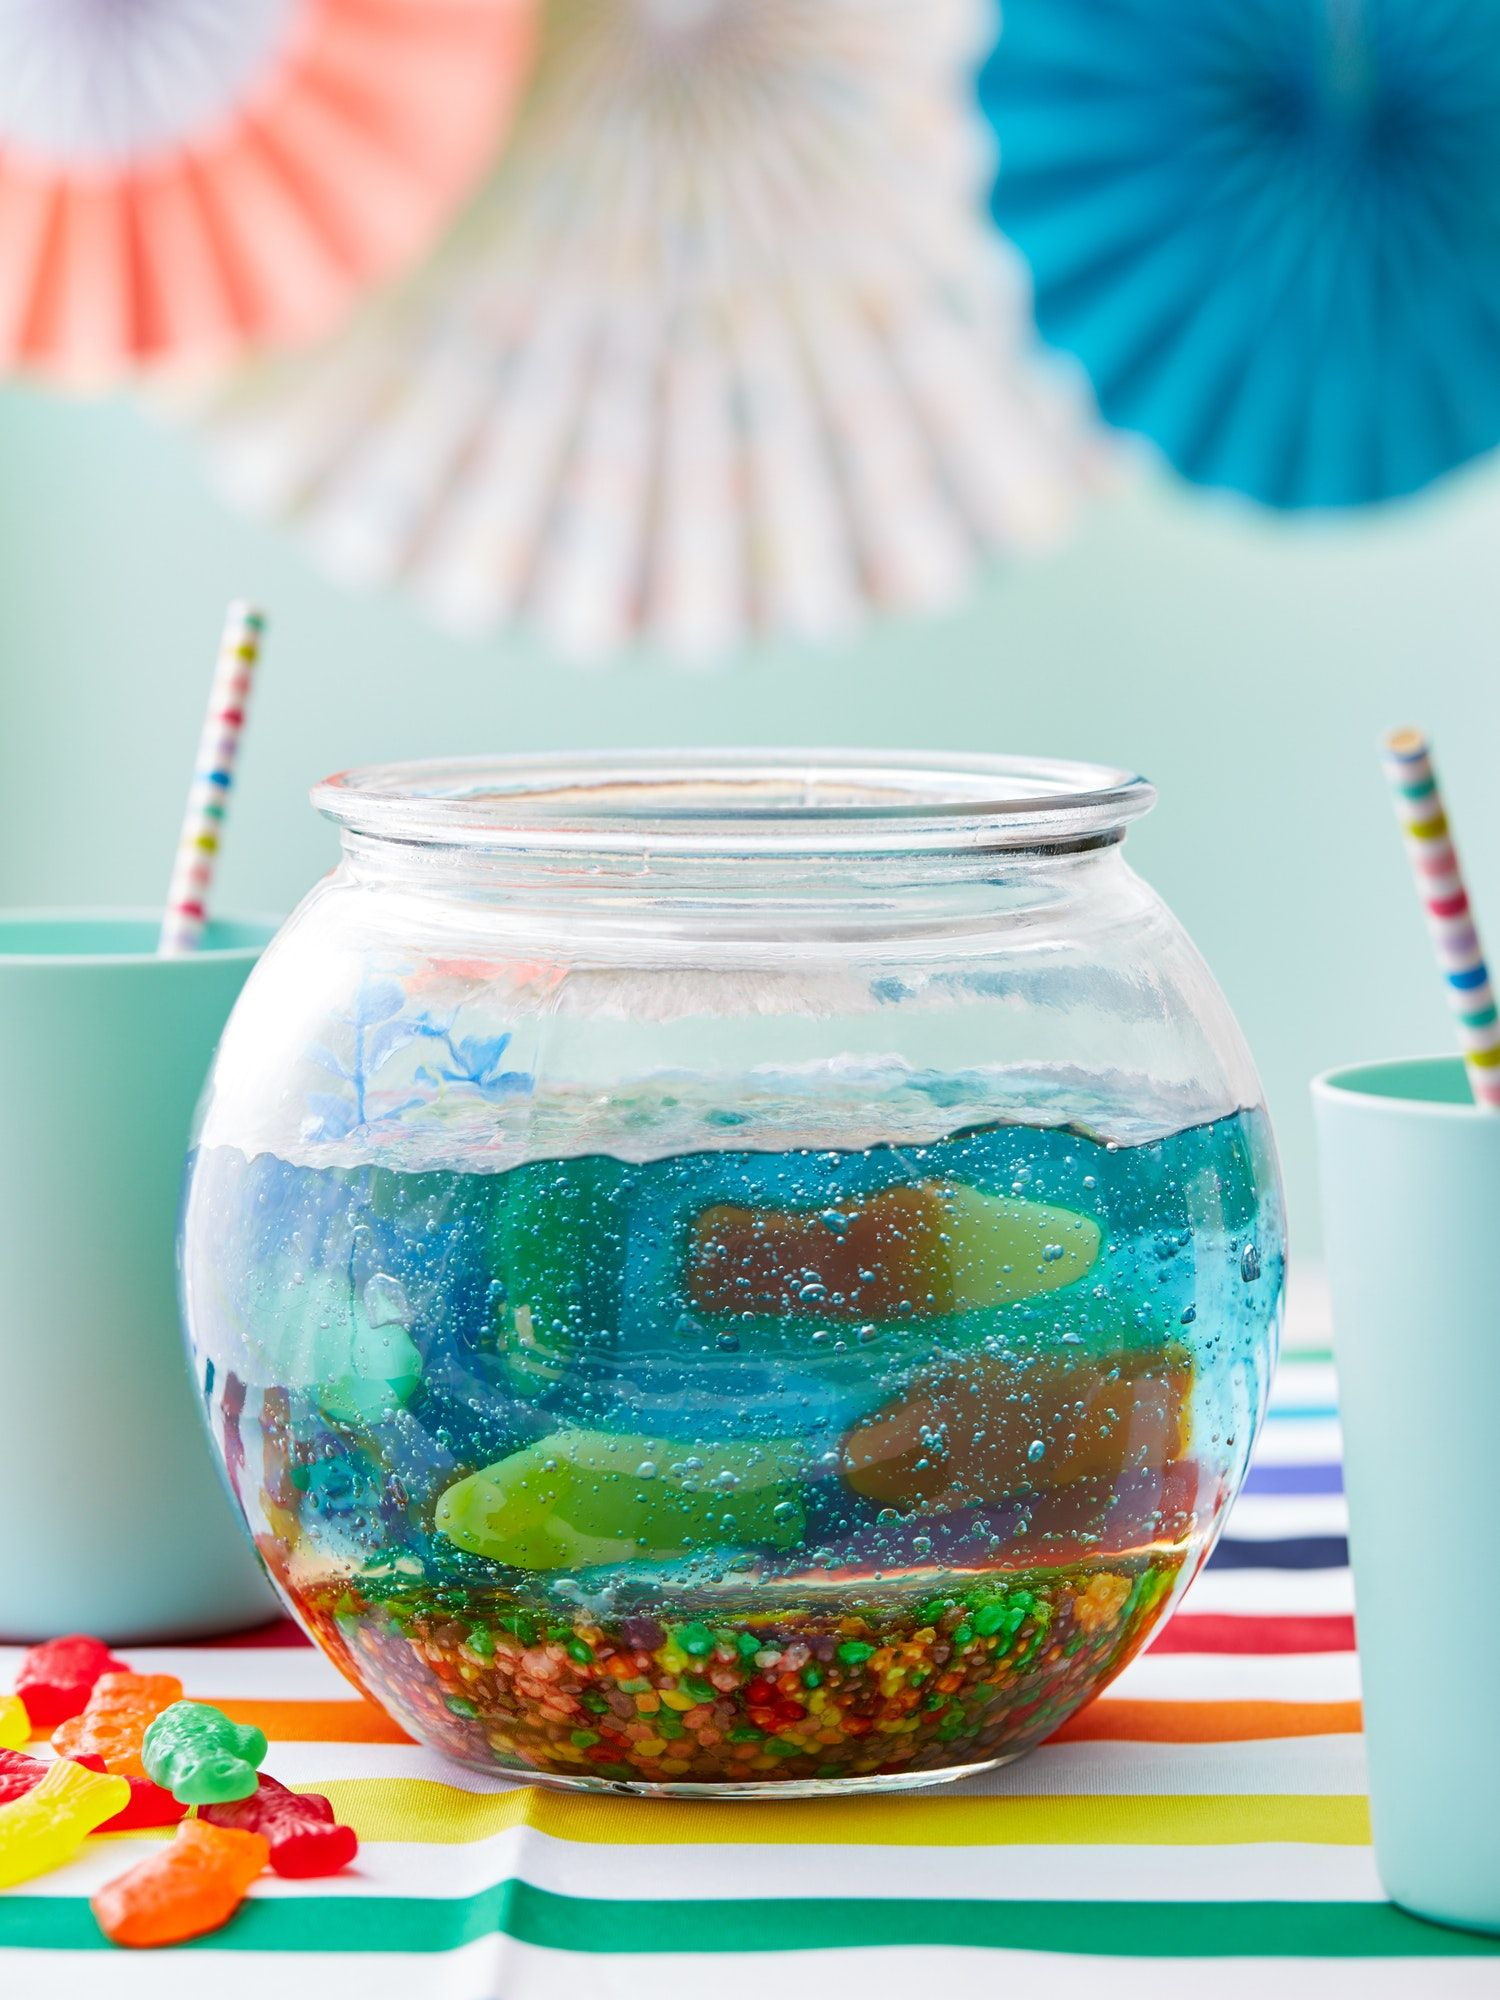 Jello and gummy candy fishbowl recipe nutrition and cooking